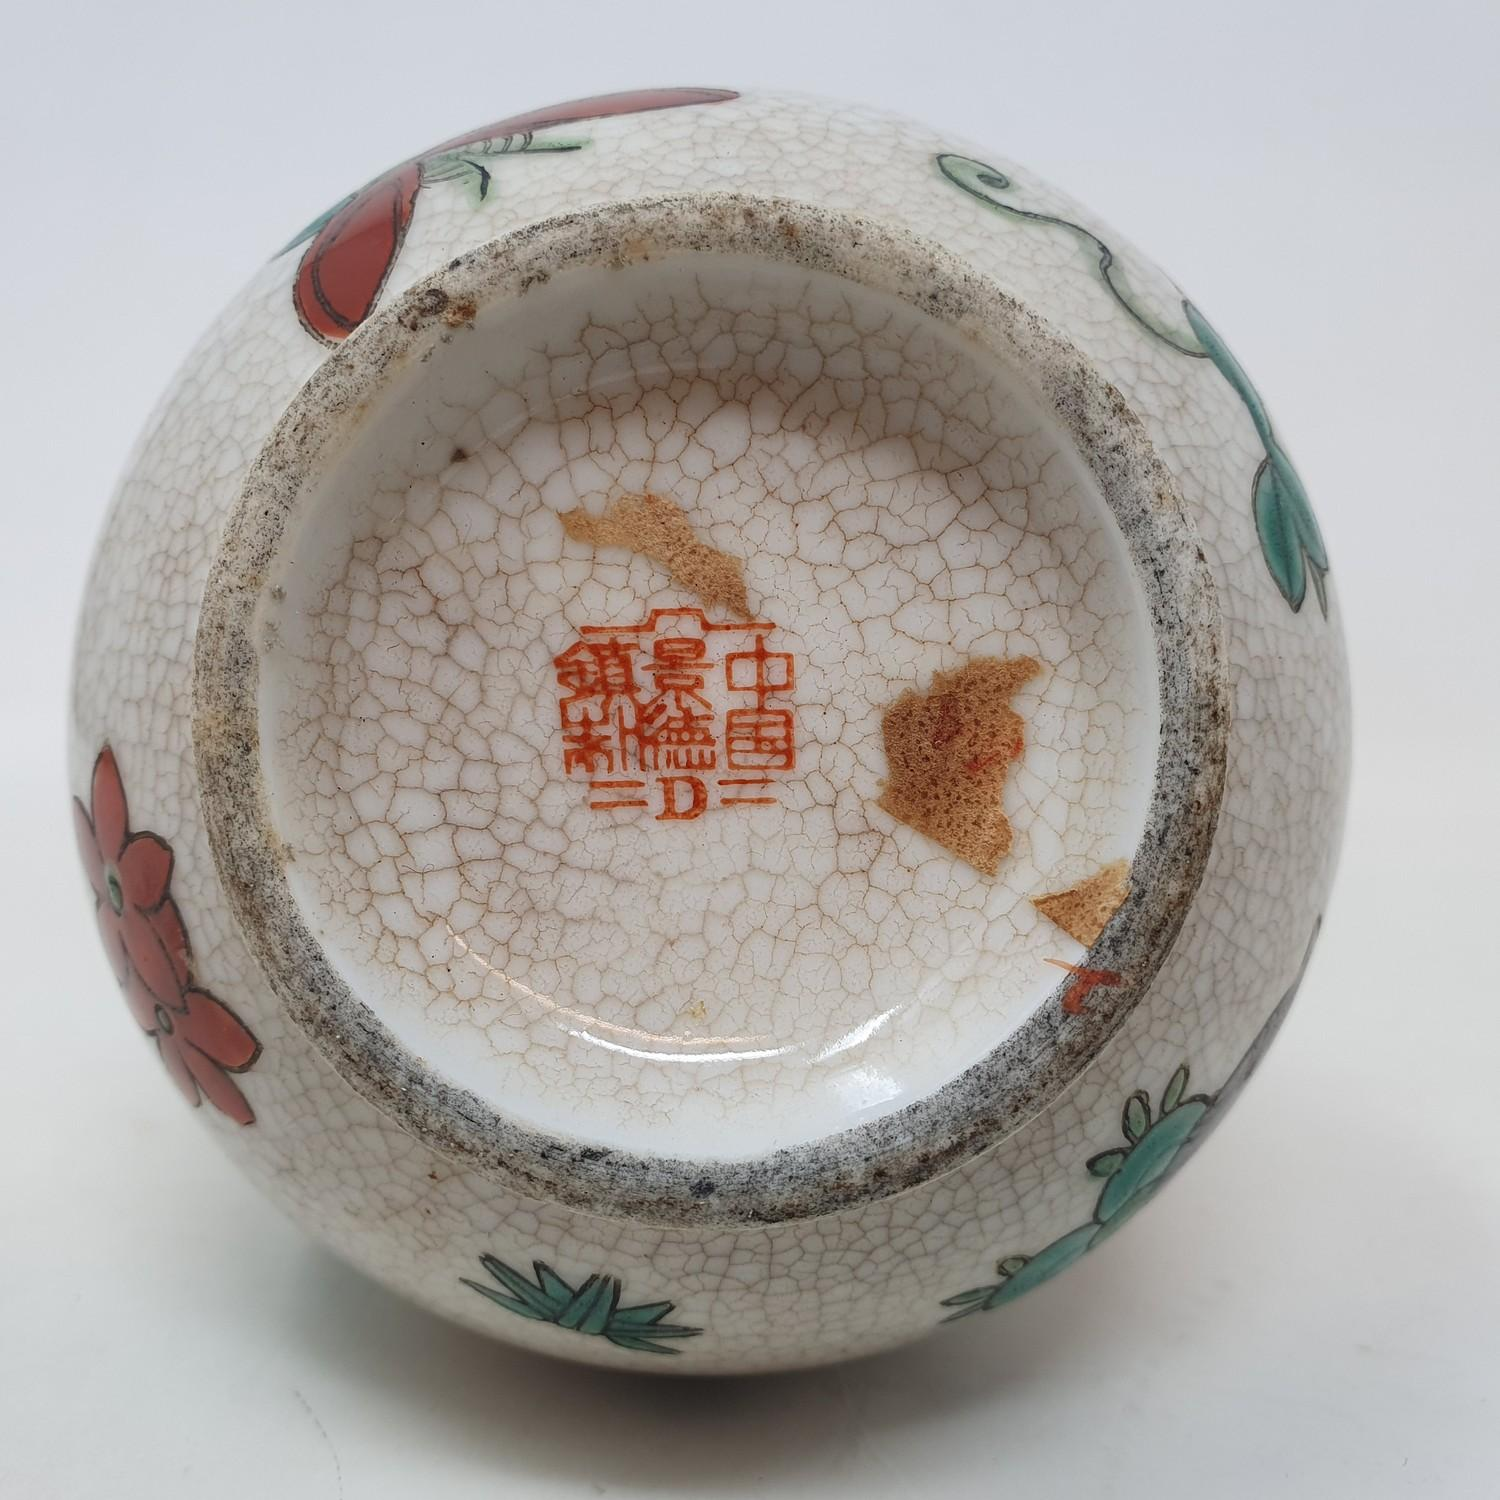 A Chinese polychrome vase, character mark to base, 13 cm high - Image 4 of 4